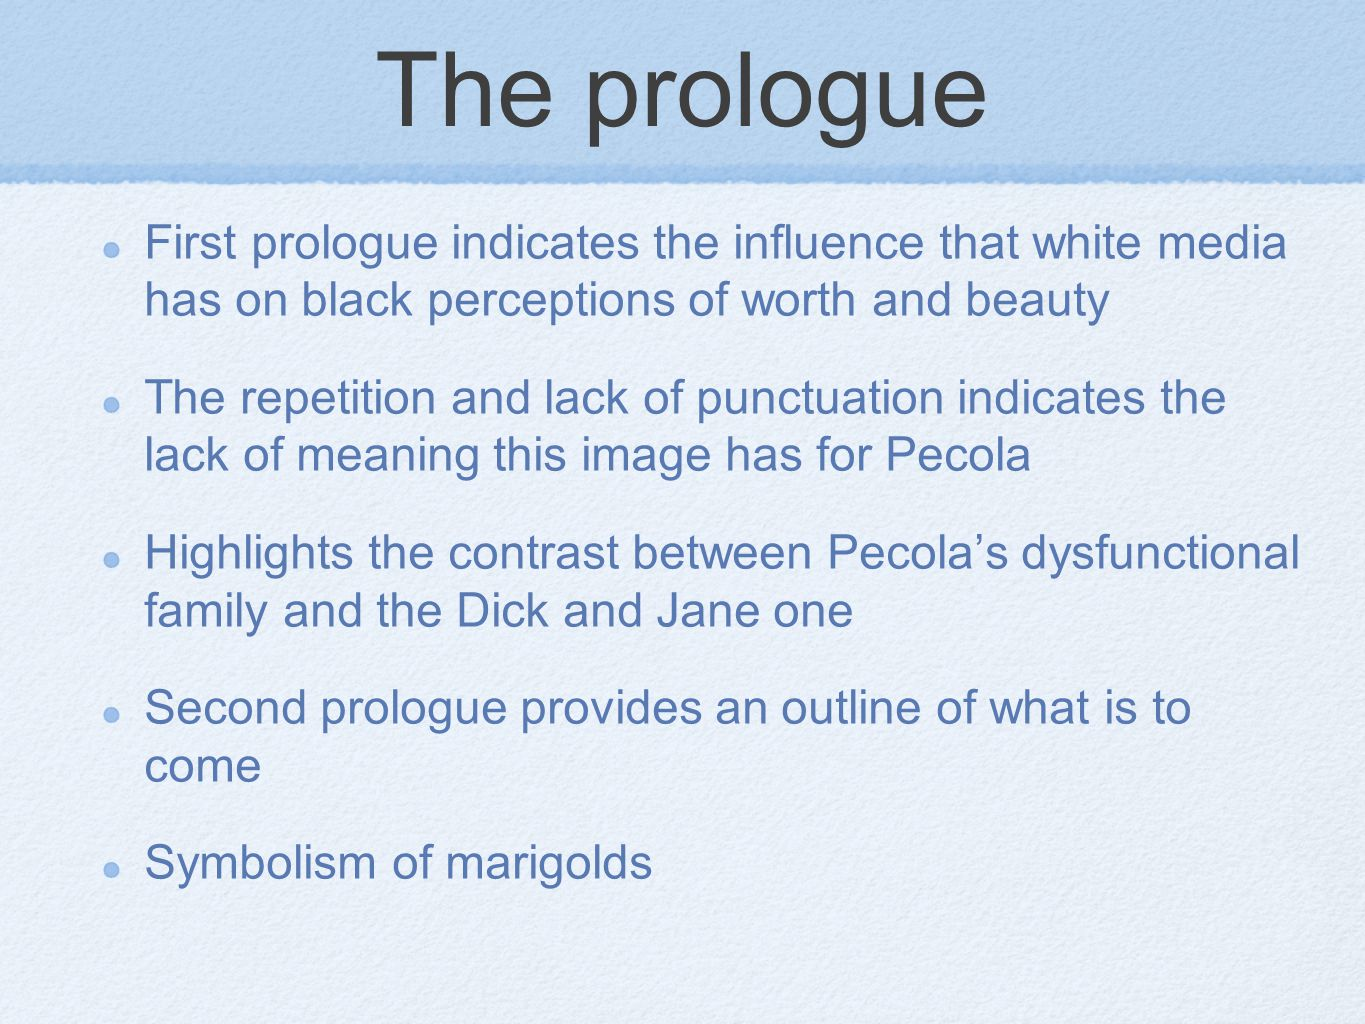 The prologue First prologue indicates the influence that white media has on black perceptions of worth and beauty.